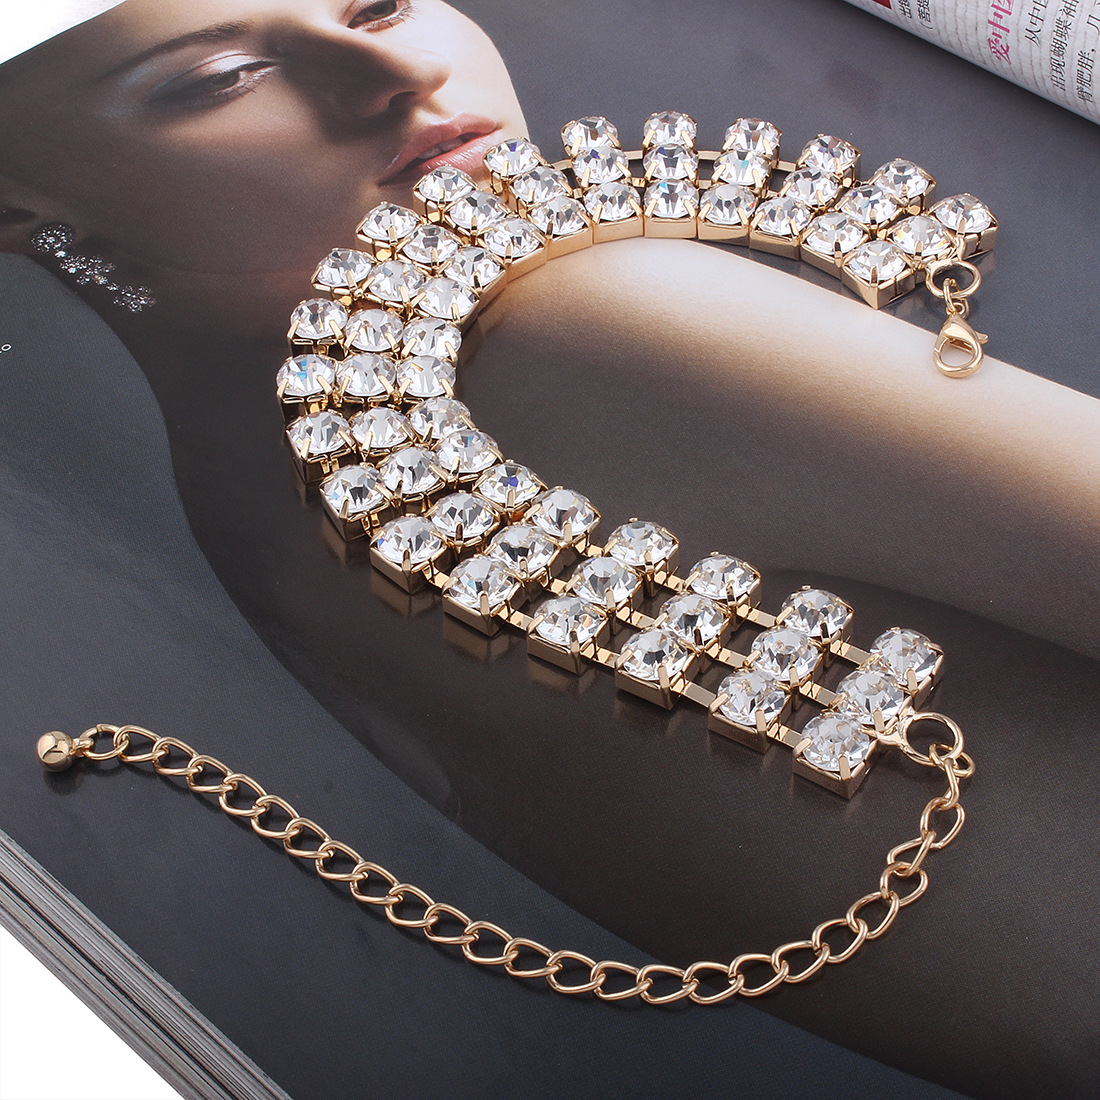 Occident and the United States alloy plating Necklace (Imitation k)NHNMD3779-Imitation k